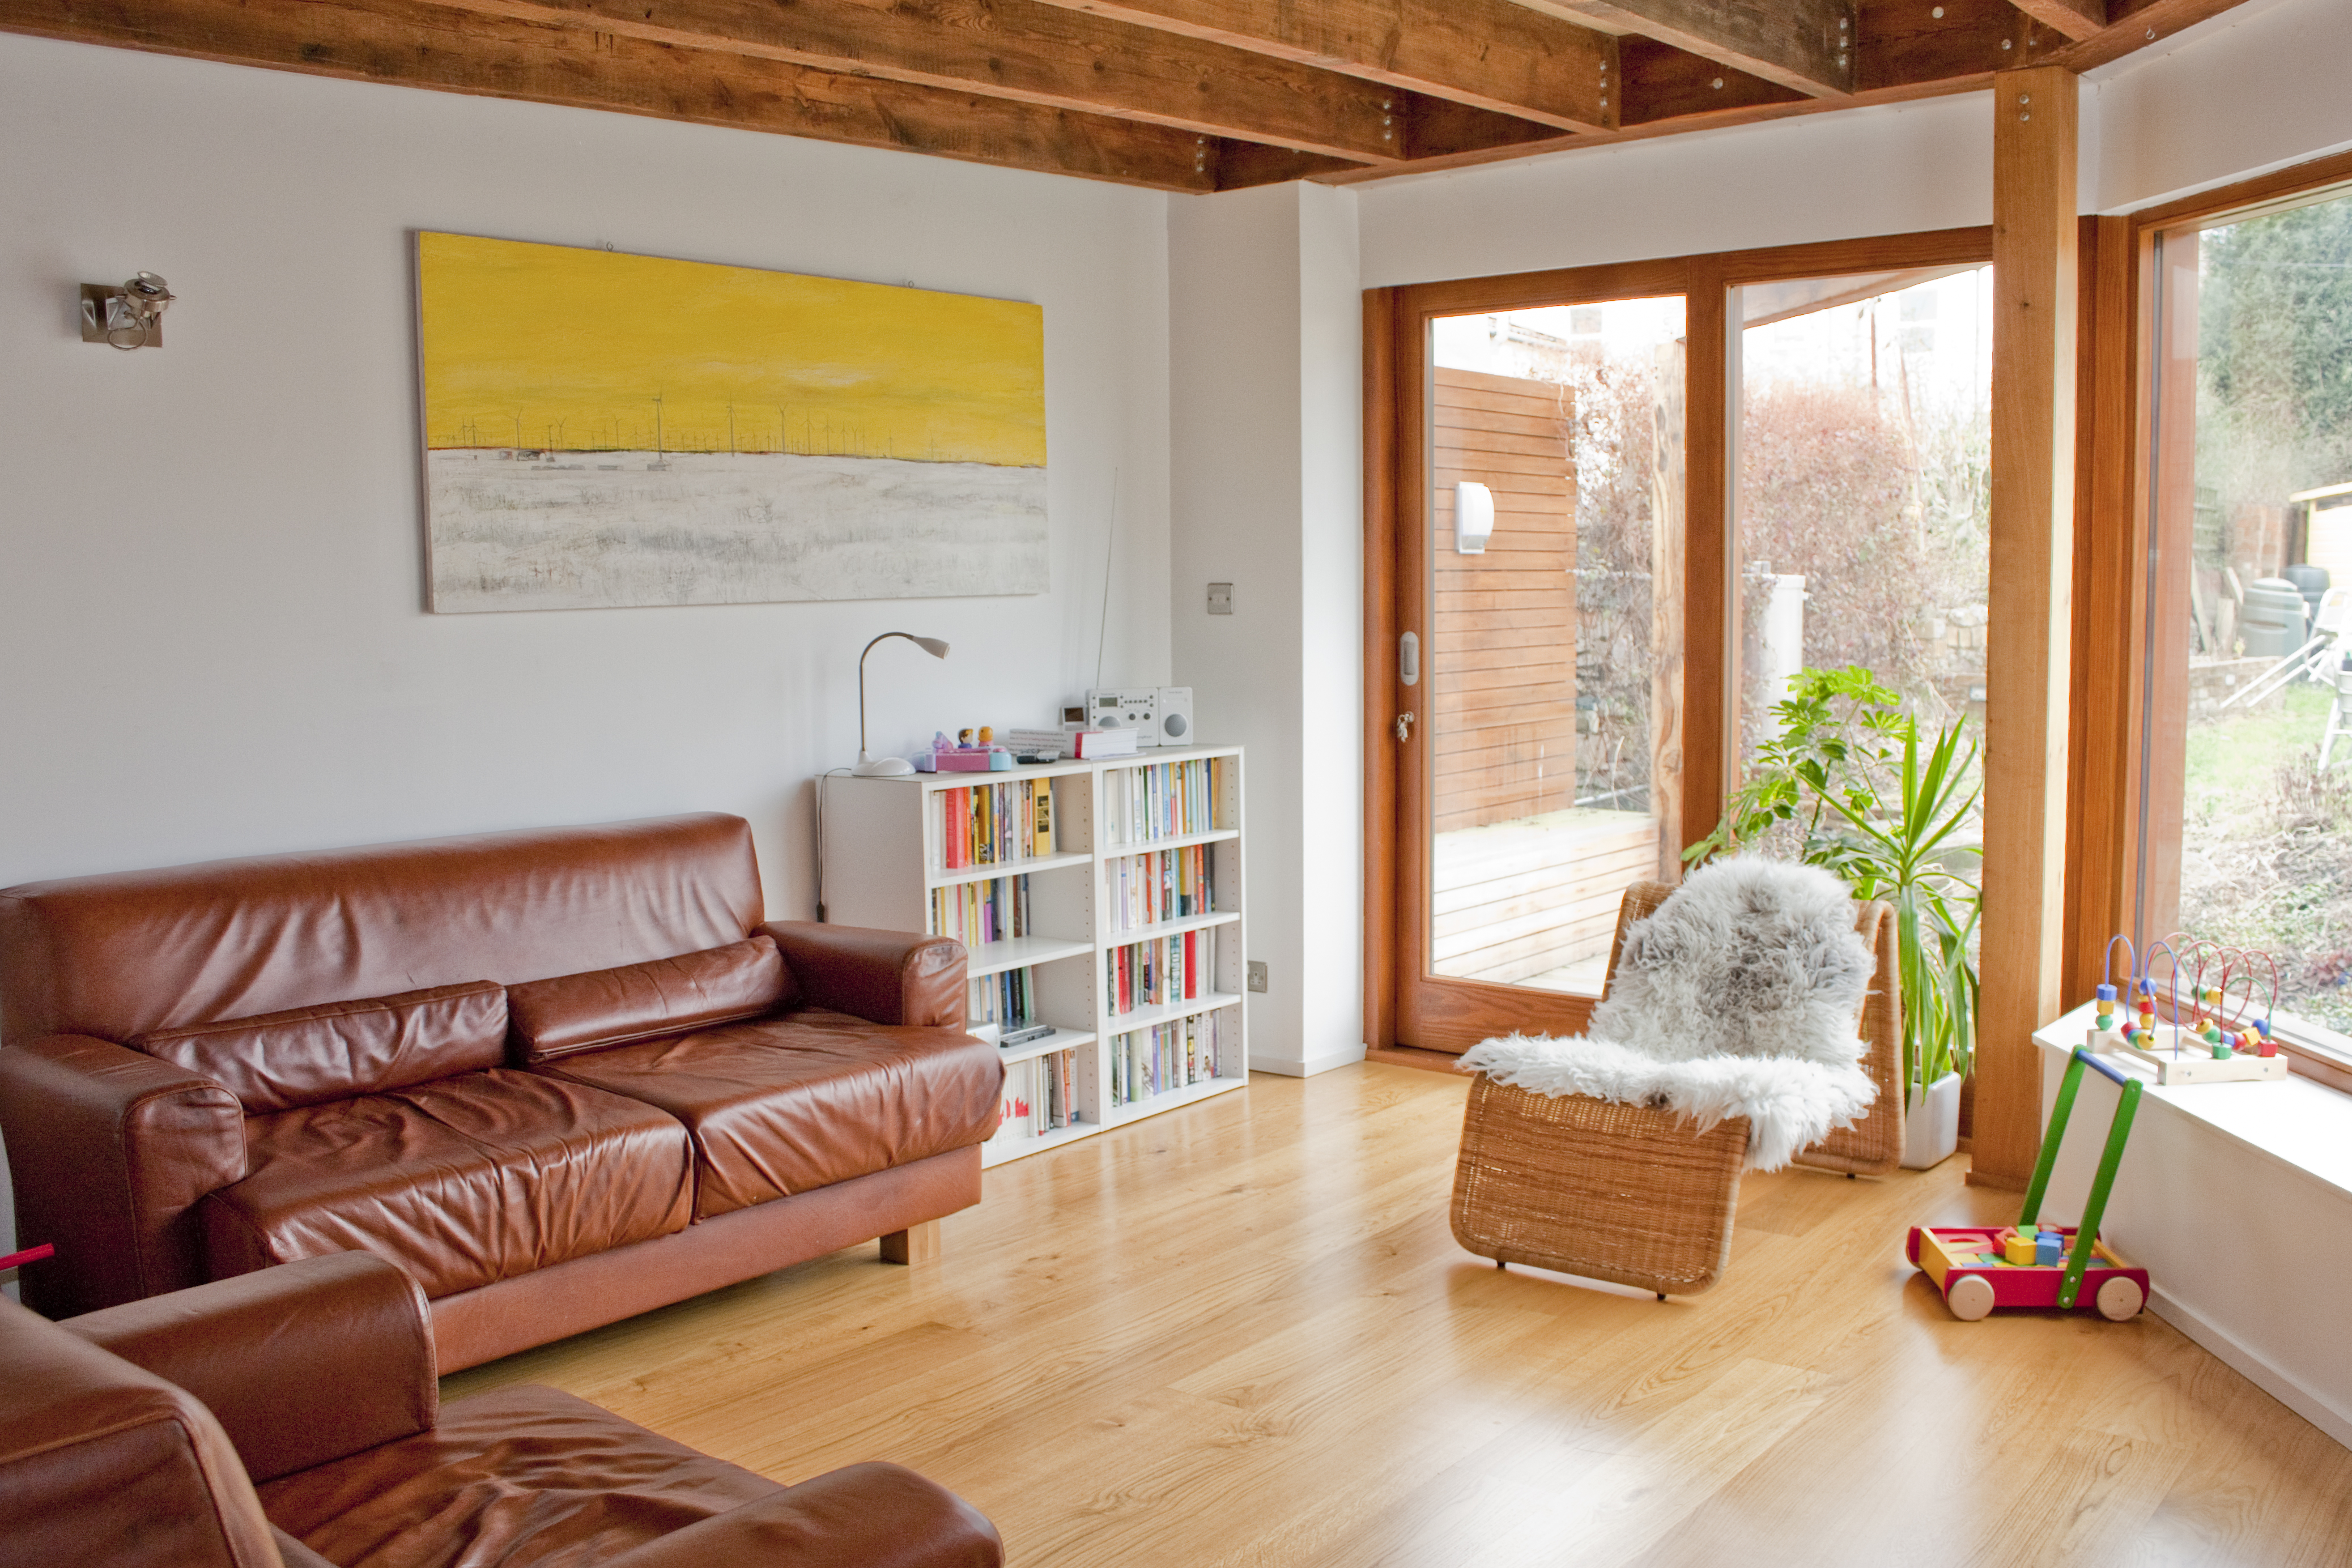 12_Extension House in Southville, Bristol by DHVA